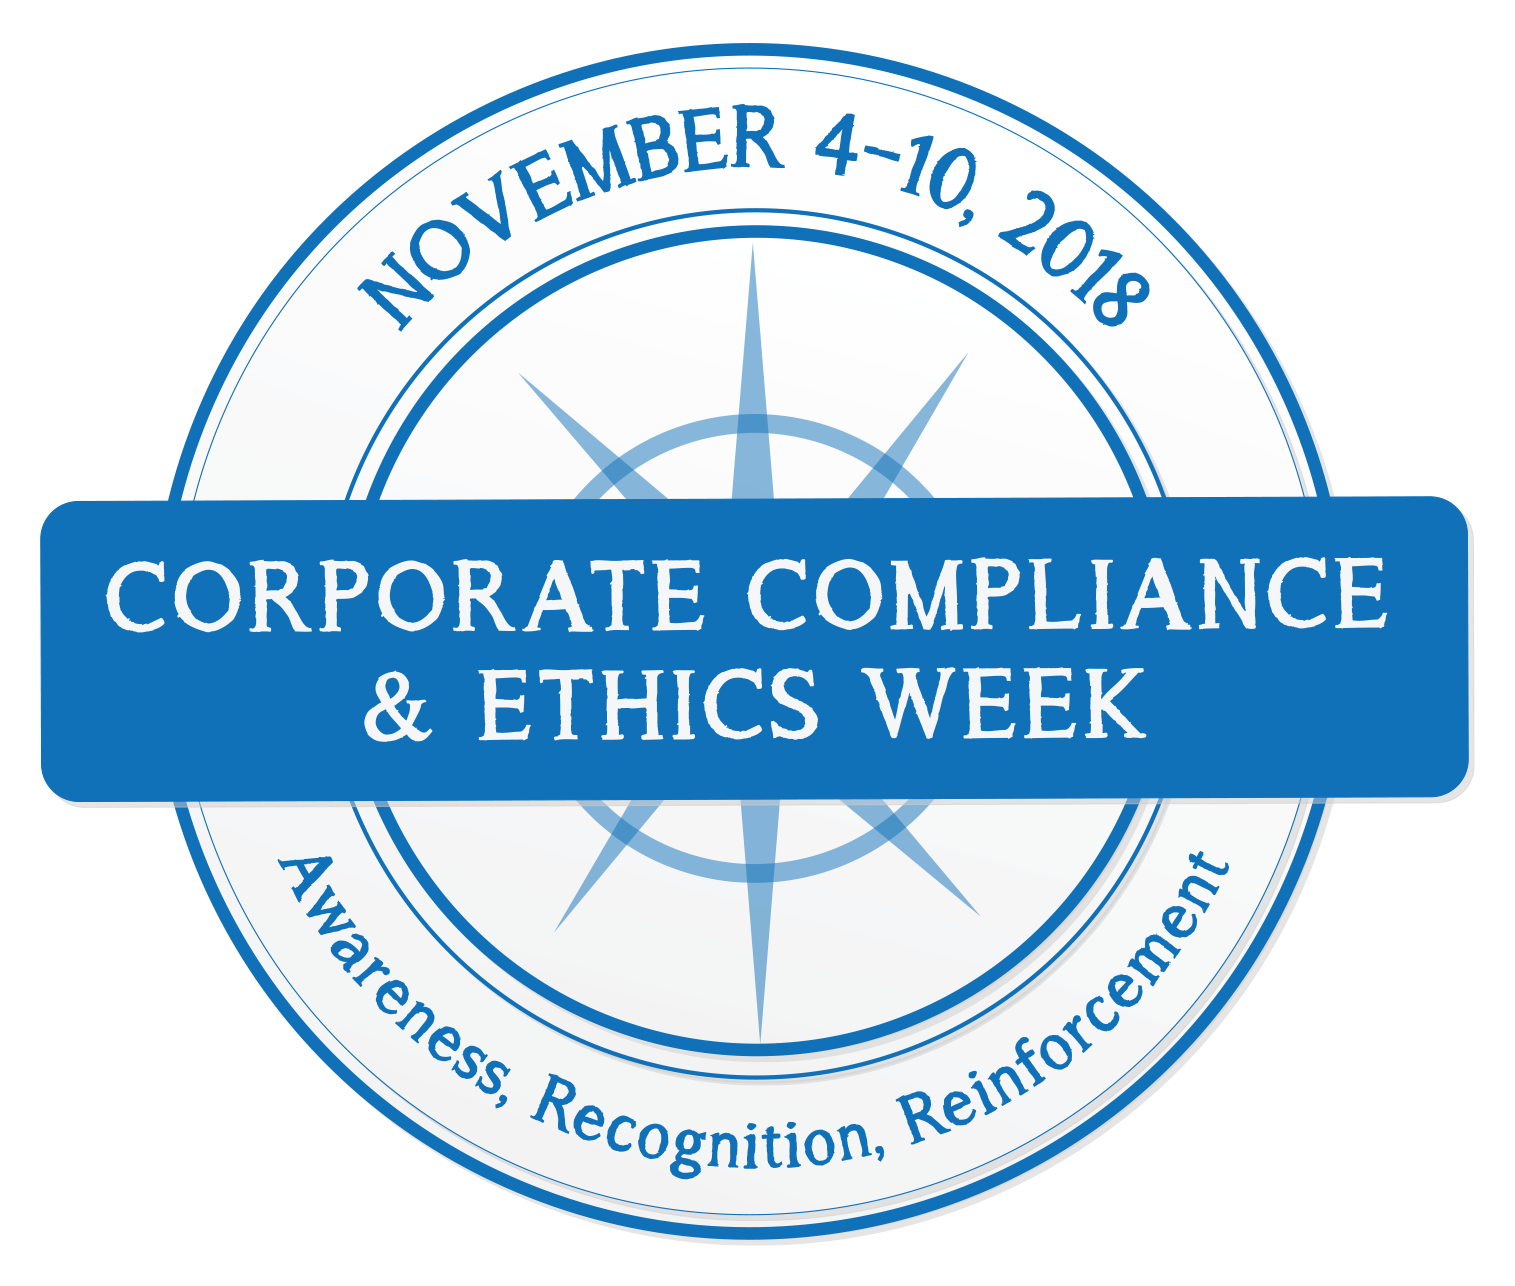 Aopa celebrates healthcare compliance ethics week aopa download the healthcare compliance ethics week logo to use for your organization no attribution is required 1betcityfo Choice Image